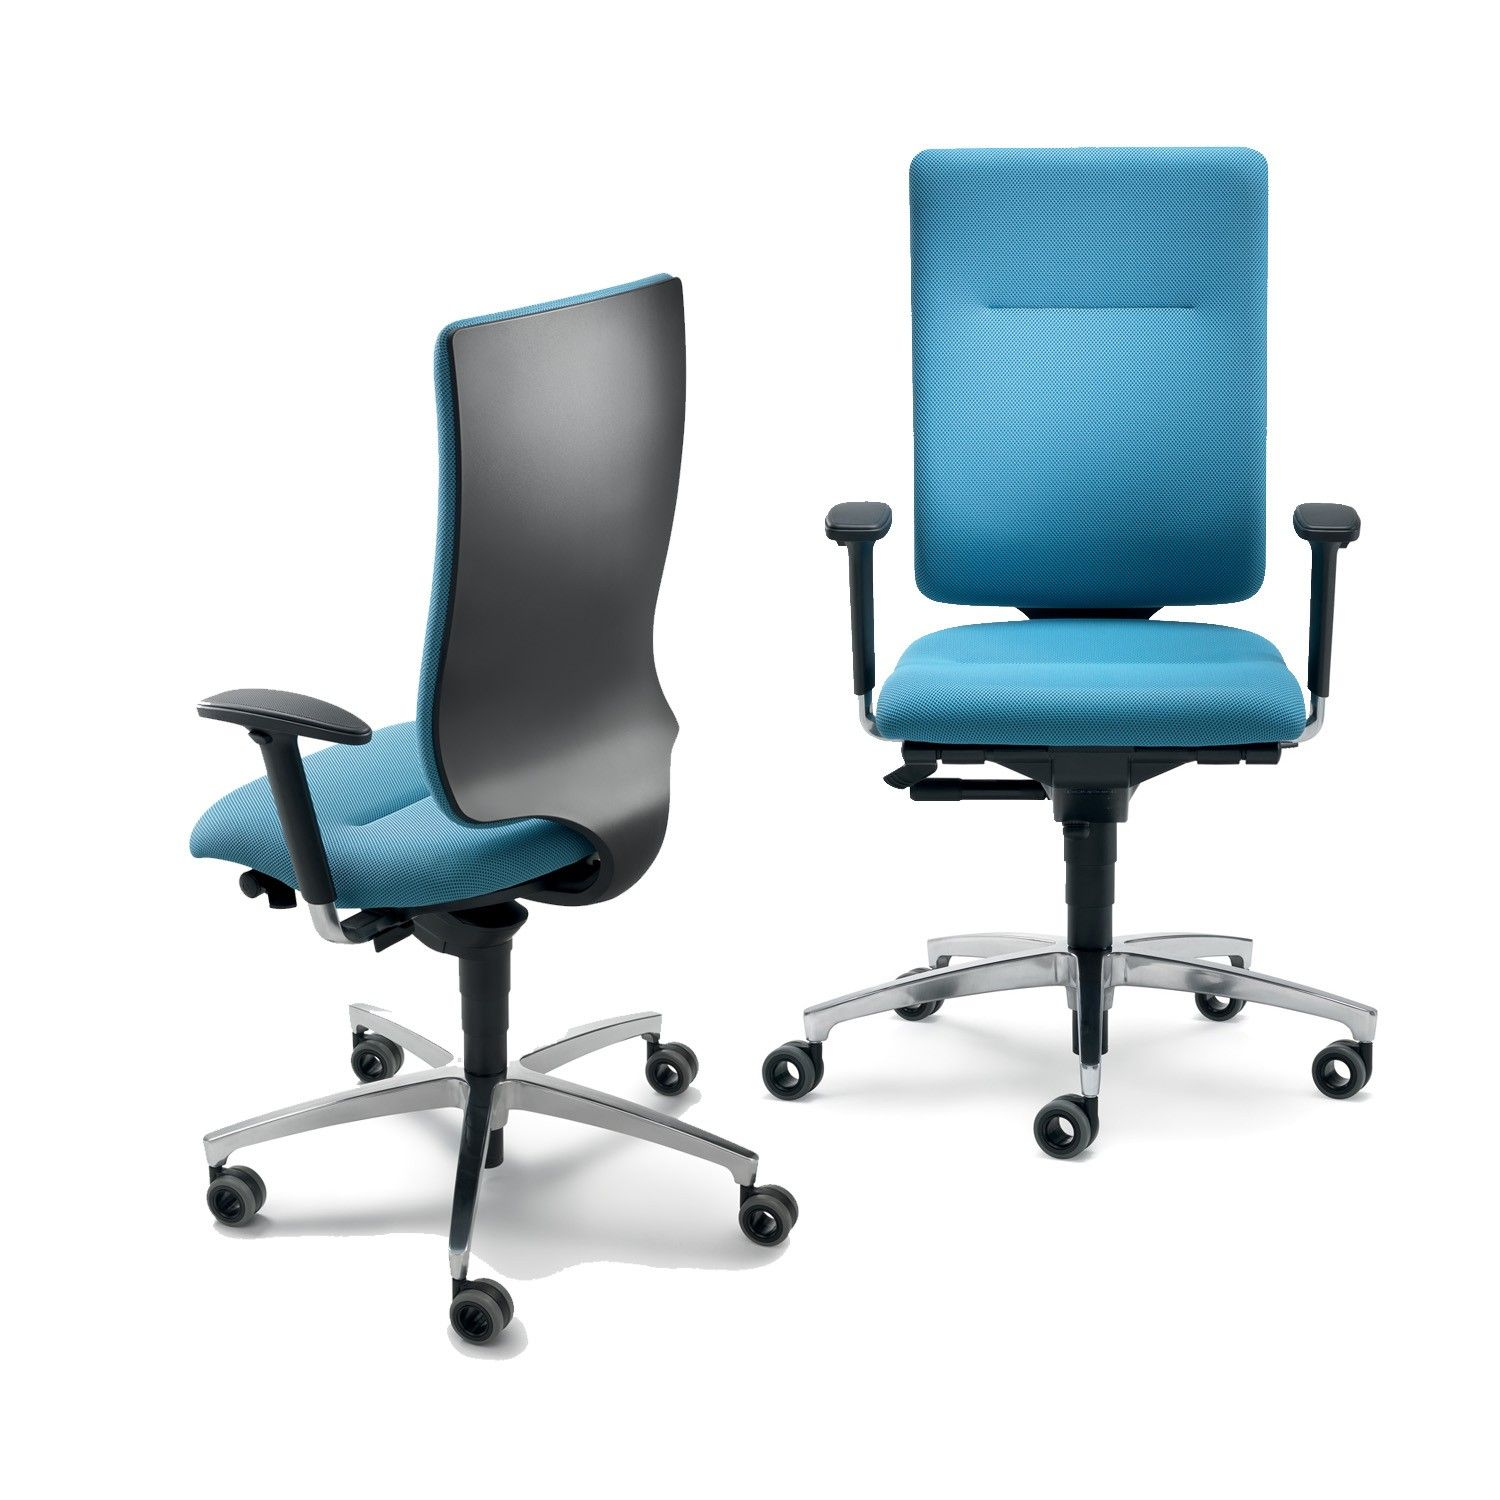 for its design quality in touch office chairs won the much coveted